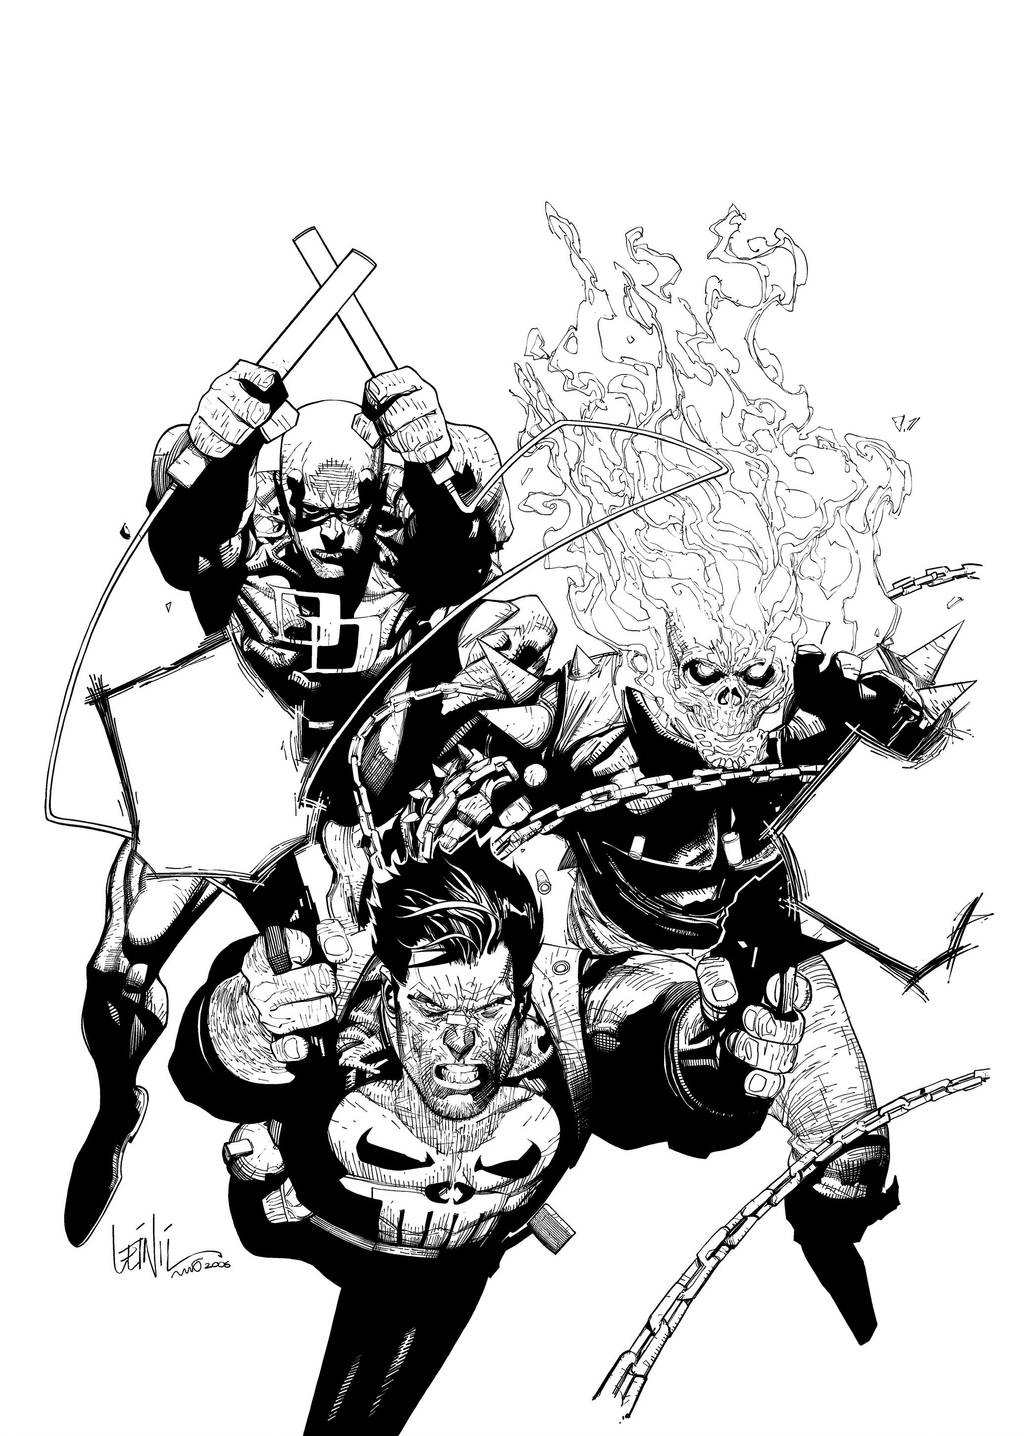 Leinil Comicbox cover inked by BerolEagle